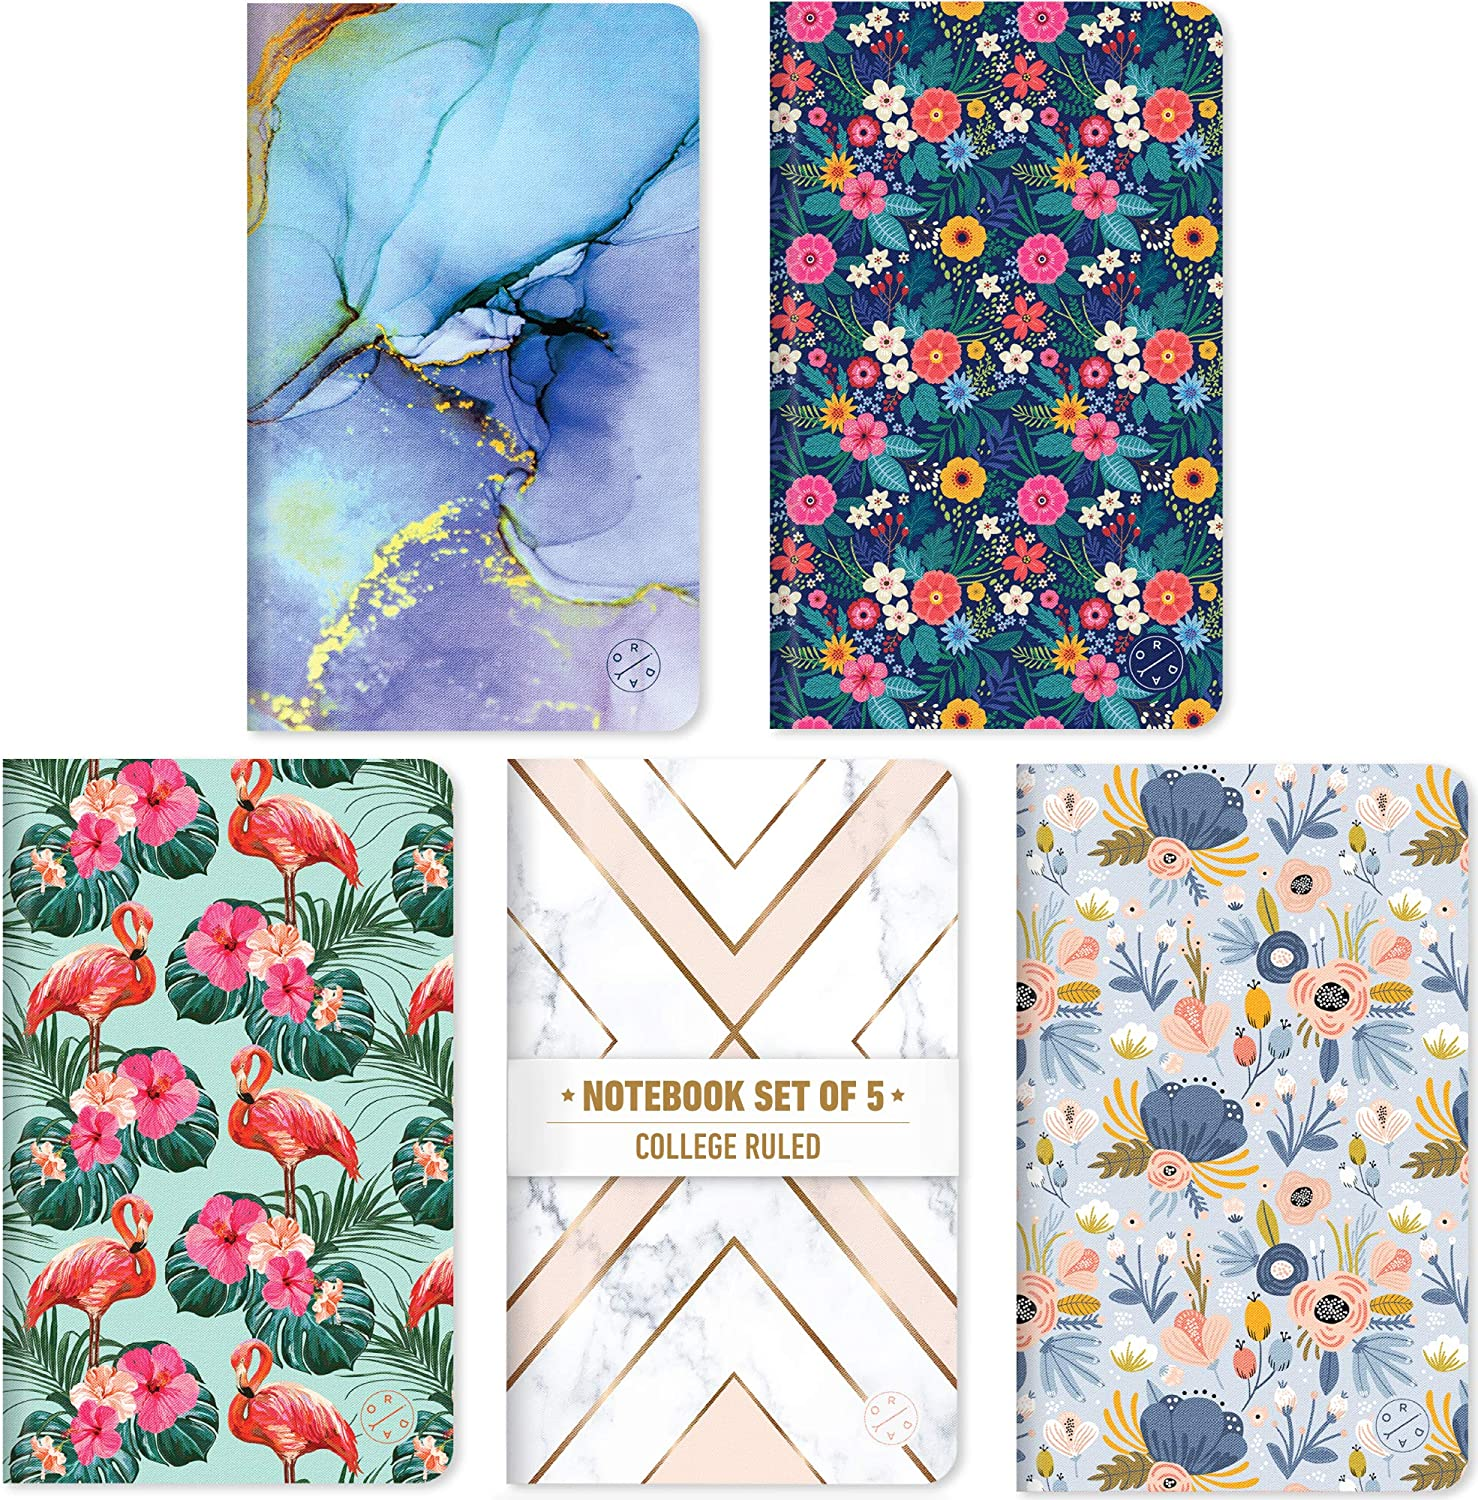 """Oriday Field Notebook Set of 5 - Ruled Subject Notebook, Pocket Journal, Diary, Travel Journal, Memo Notebook Sets For Women, Perfect For Gift (5""""x8"""", Lined, Assorted Patterns)"""